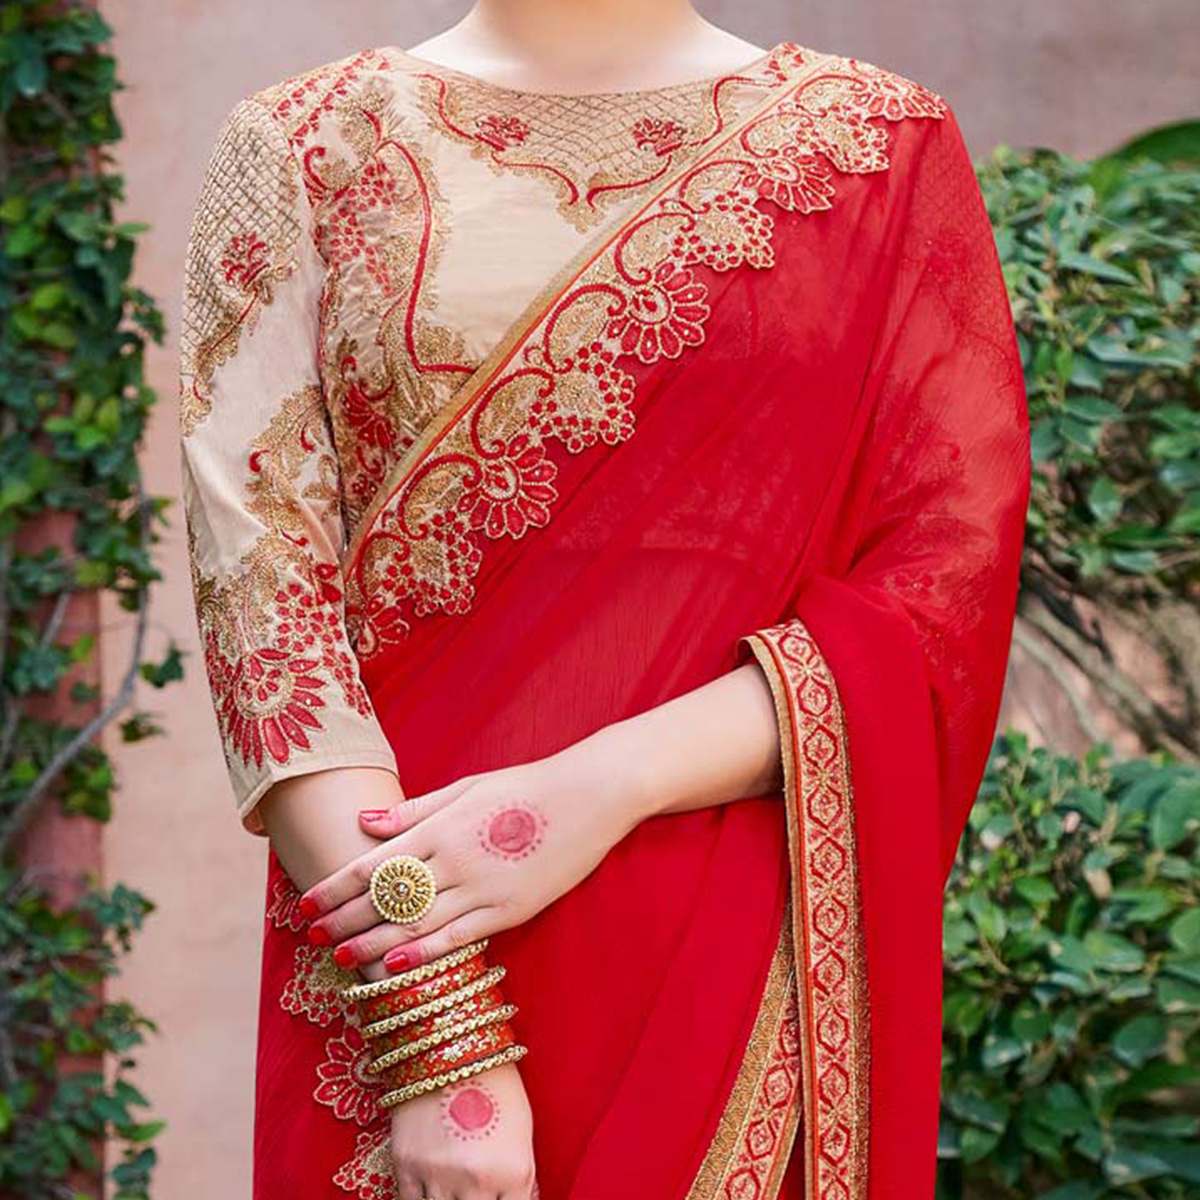 Ravishing Red-Beige Colored Designer Partywear Moss Chiffon Silk Saree